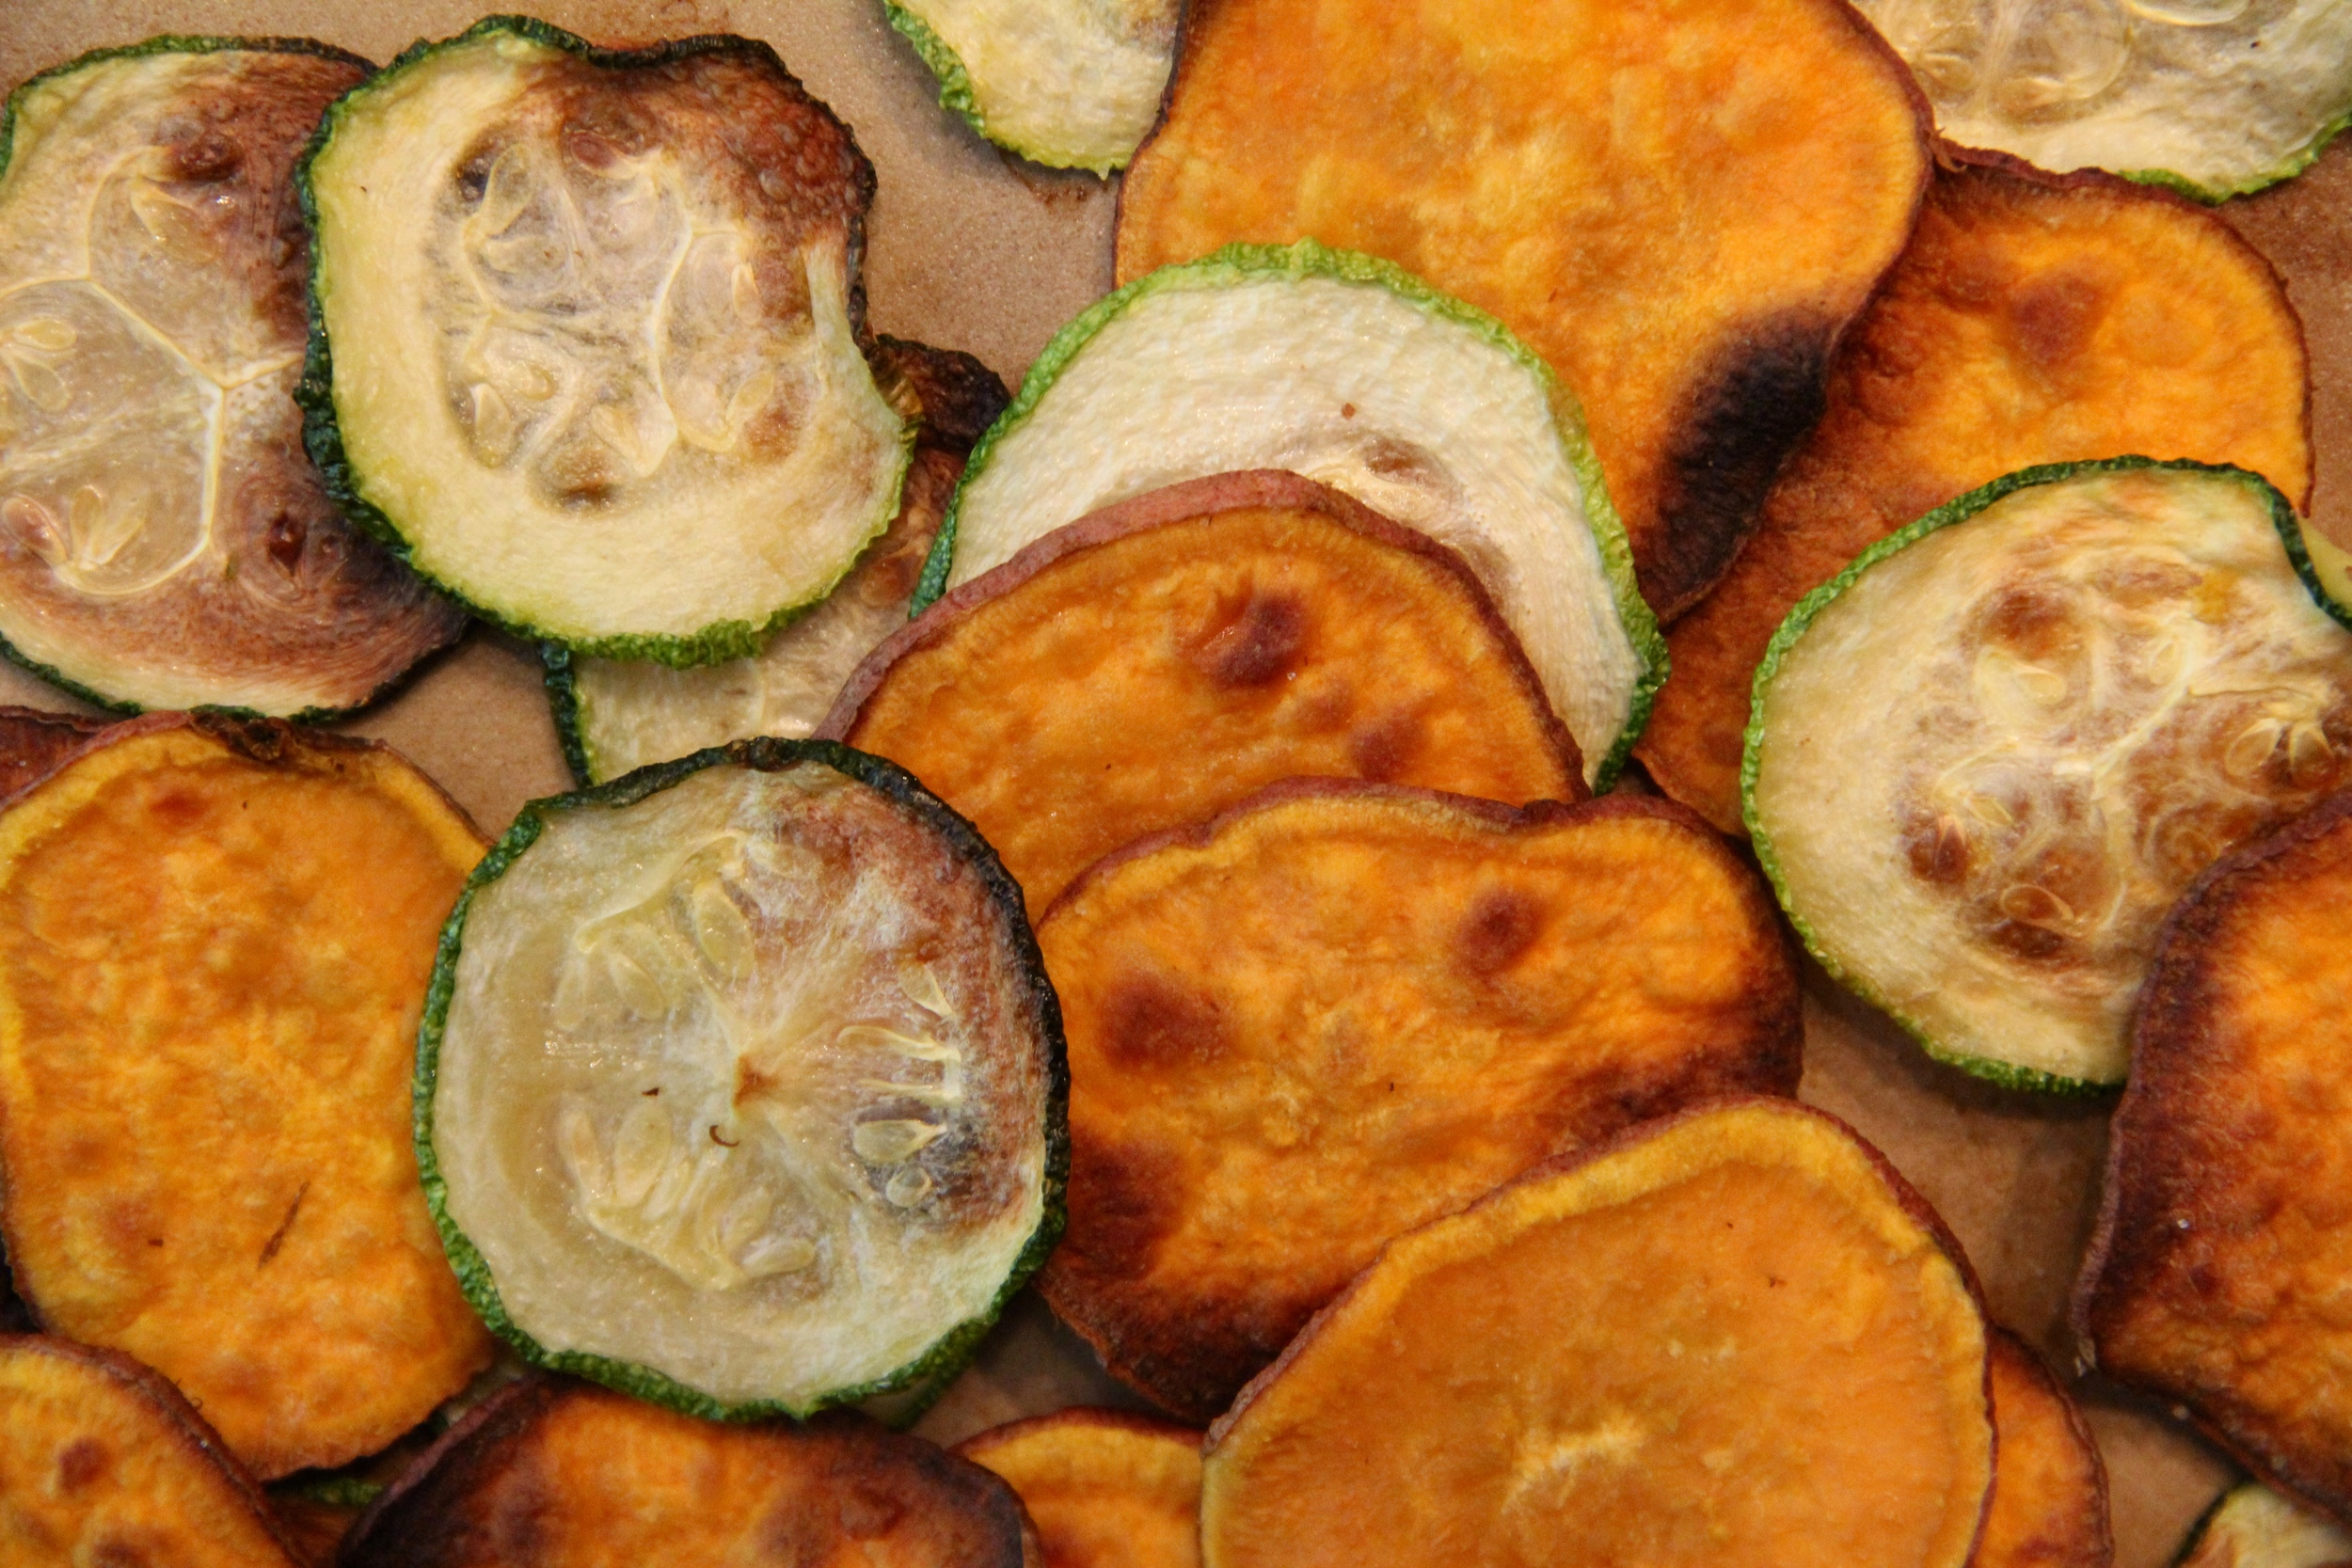 homemade sweet potato chips and zucchini chips